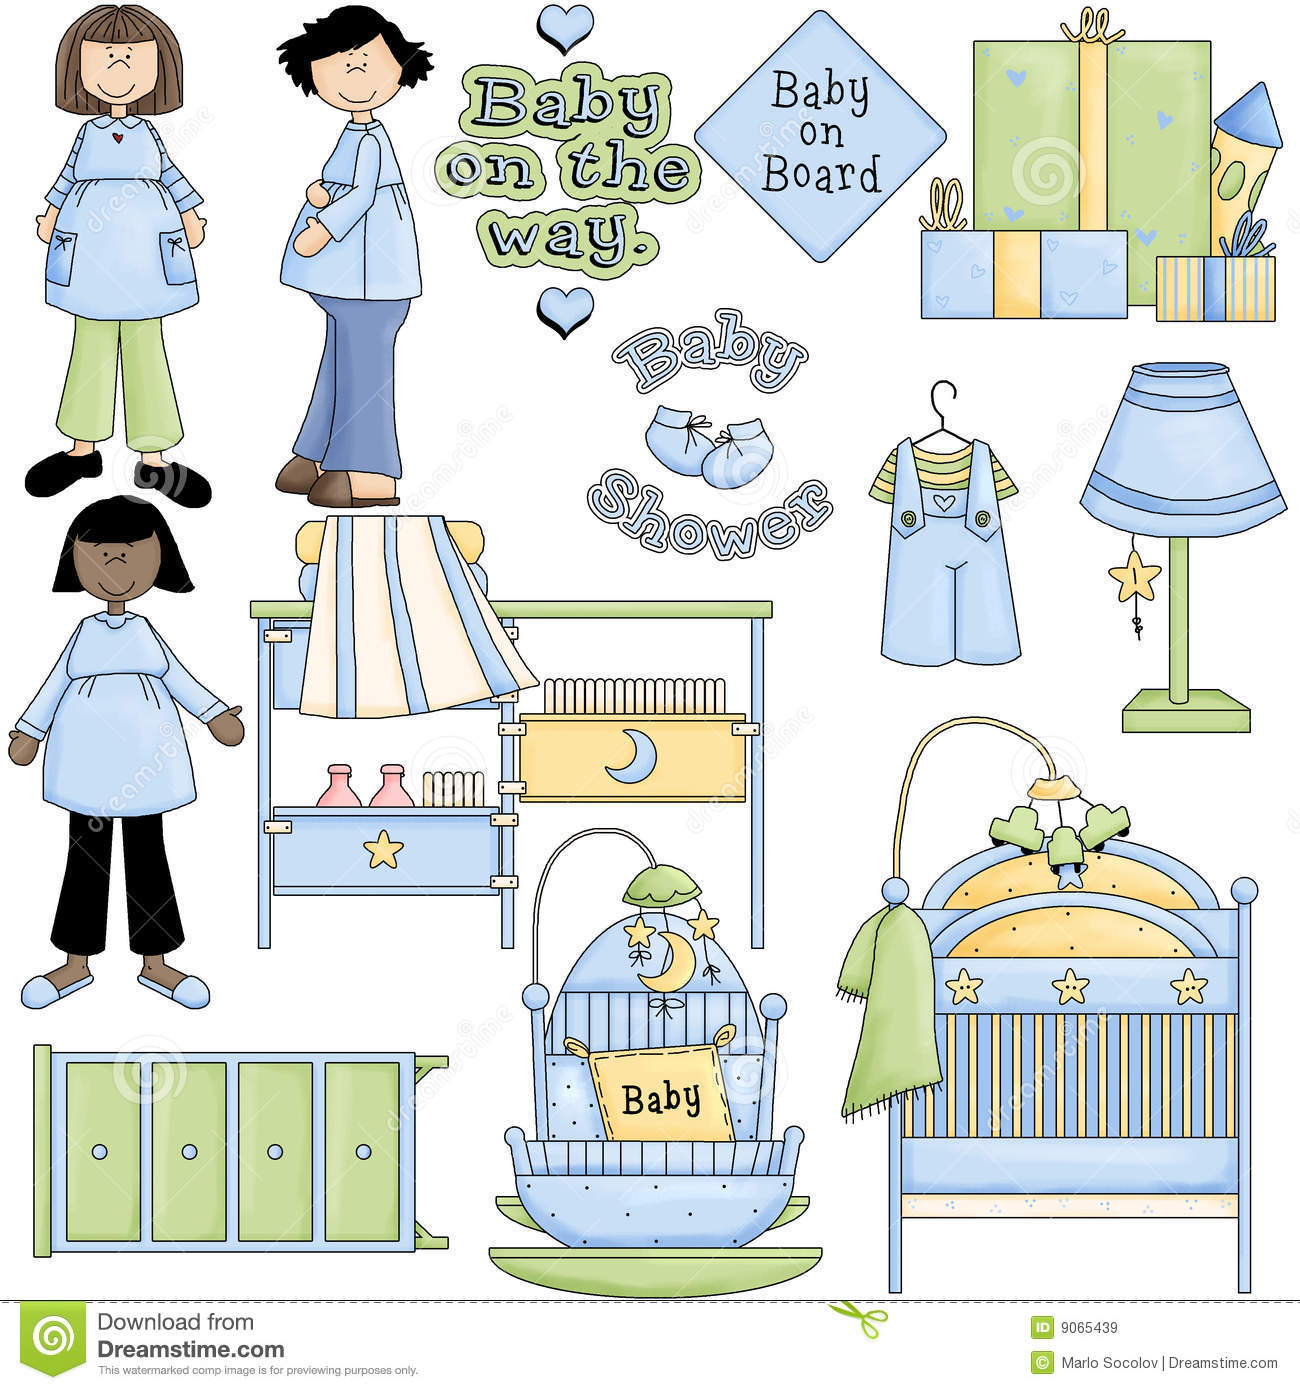 free baby shower clipart boy - photo #40